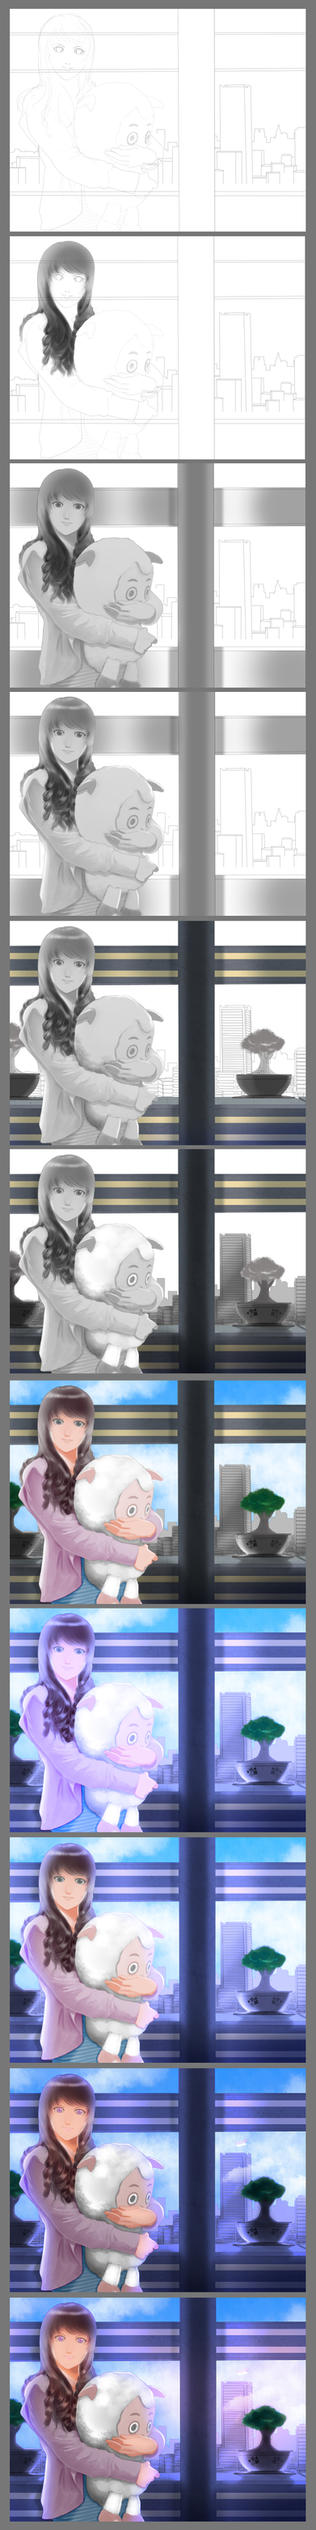 step by step girl and doll by Dye-EvolveII